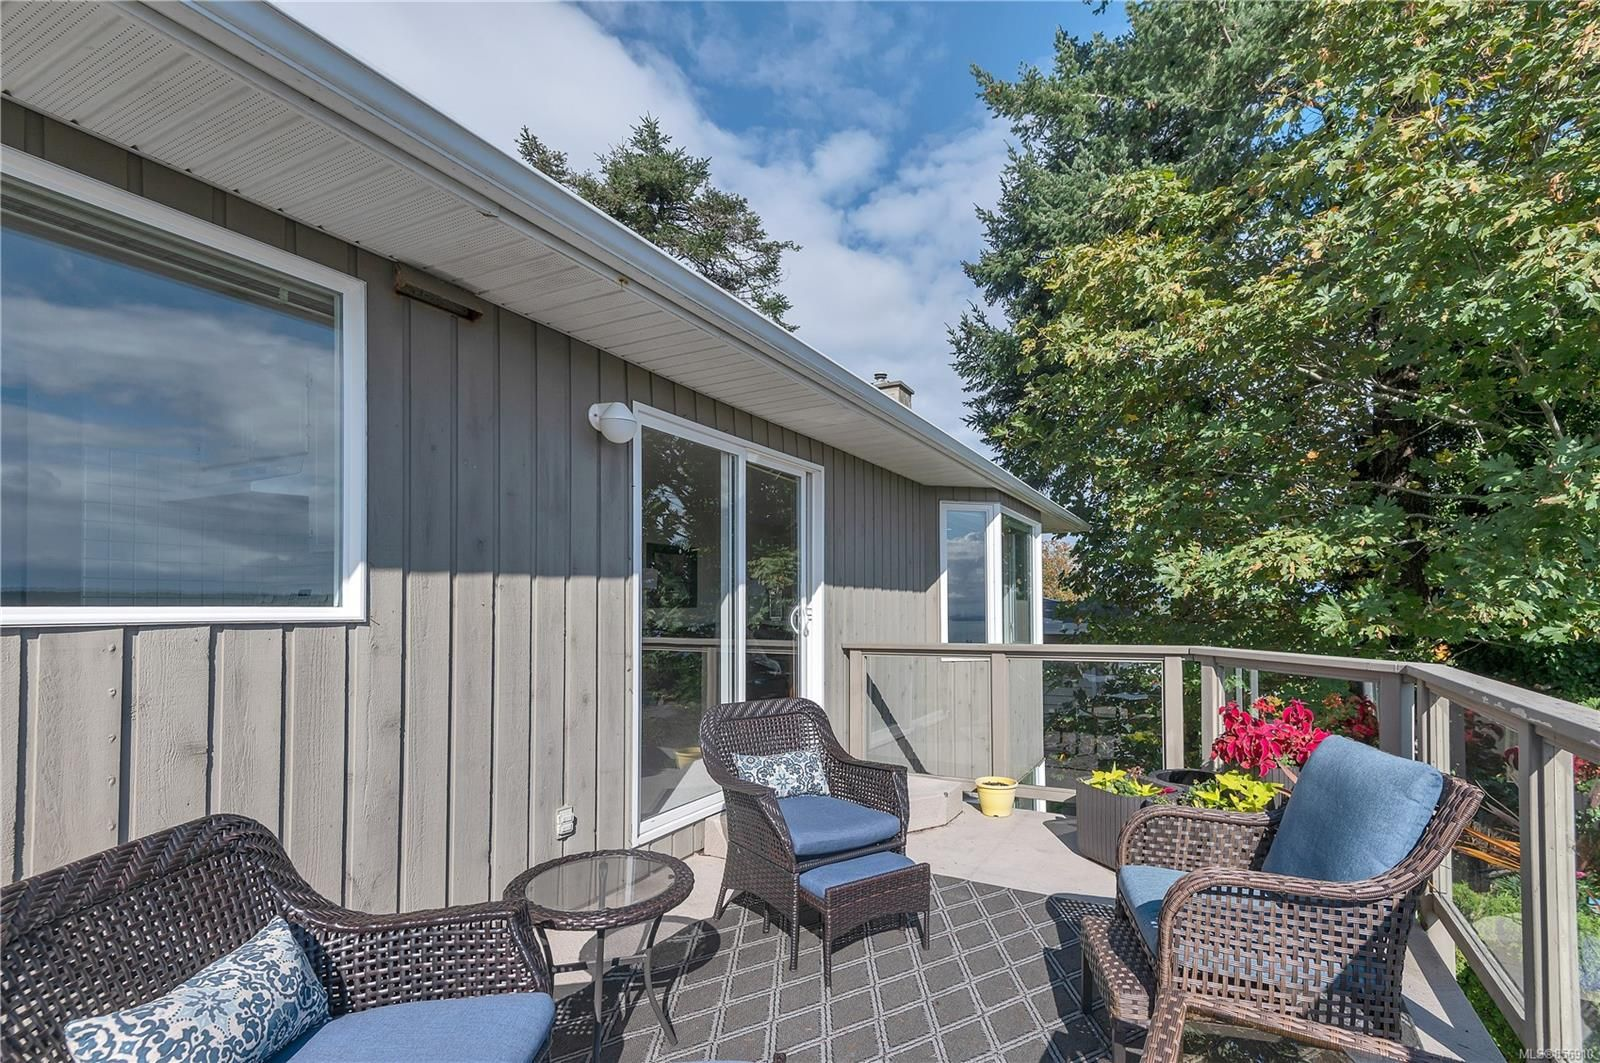 Photo 42: Photos: 215 S Alder St in : CR Campbell River Central House for sale (Campbell River)  : MLS®# 856910